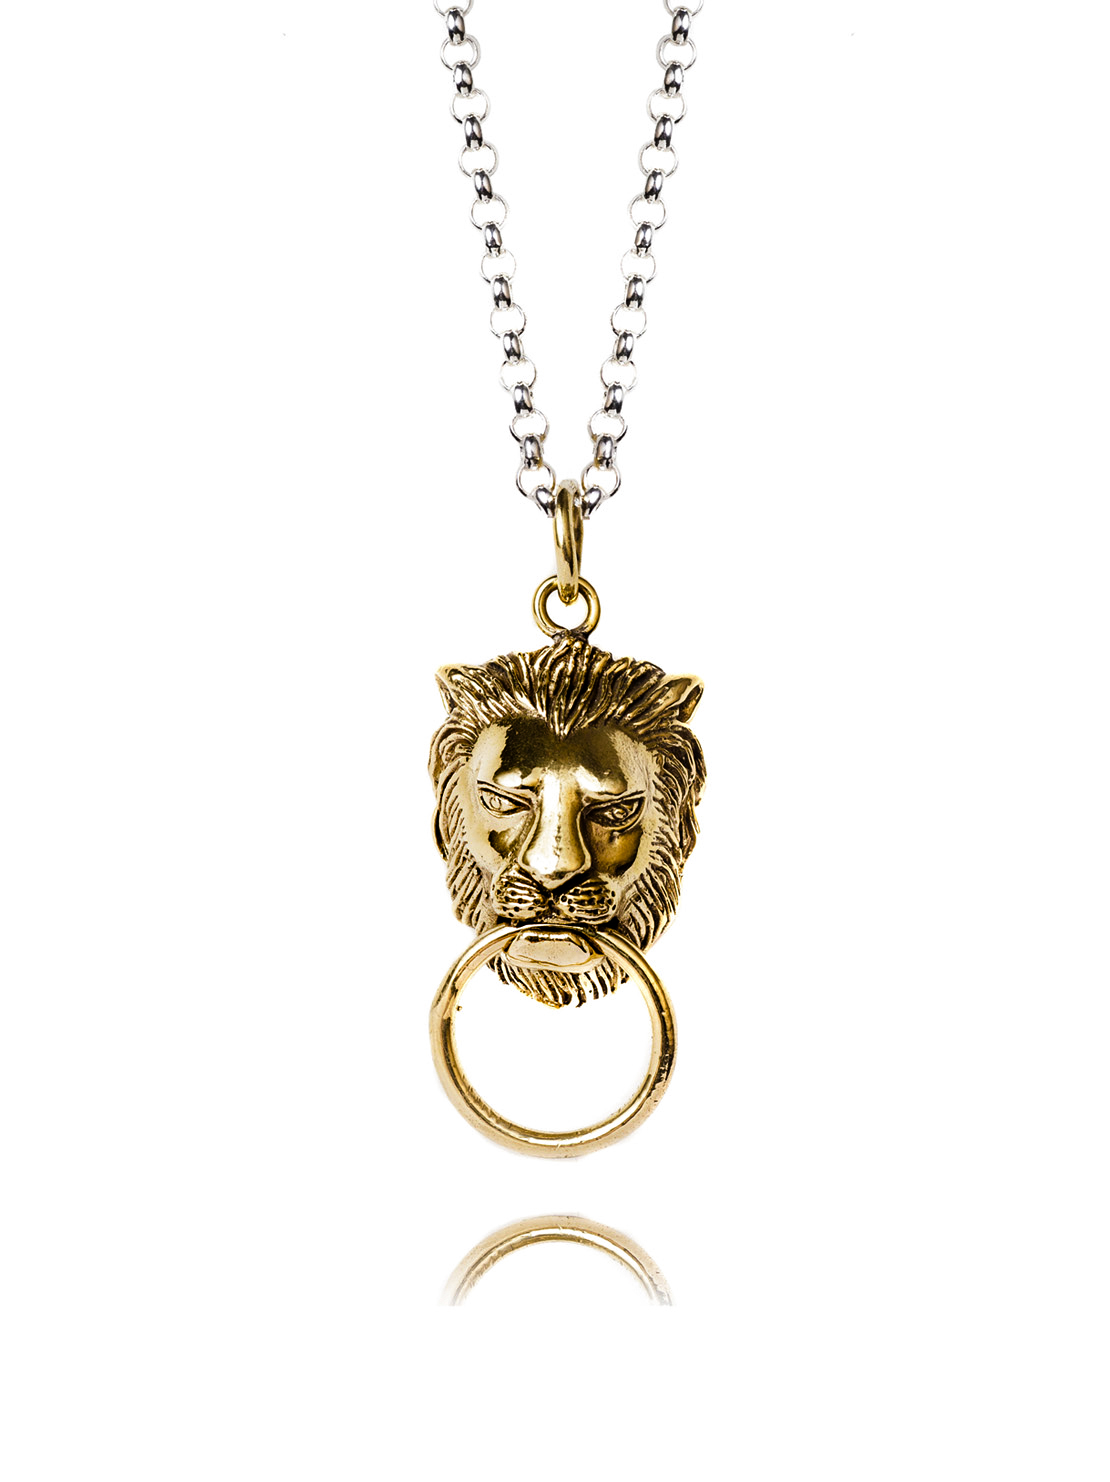 brass lion door knocker necklace on belcher chain tilly